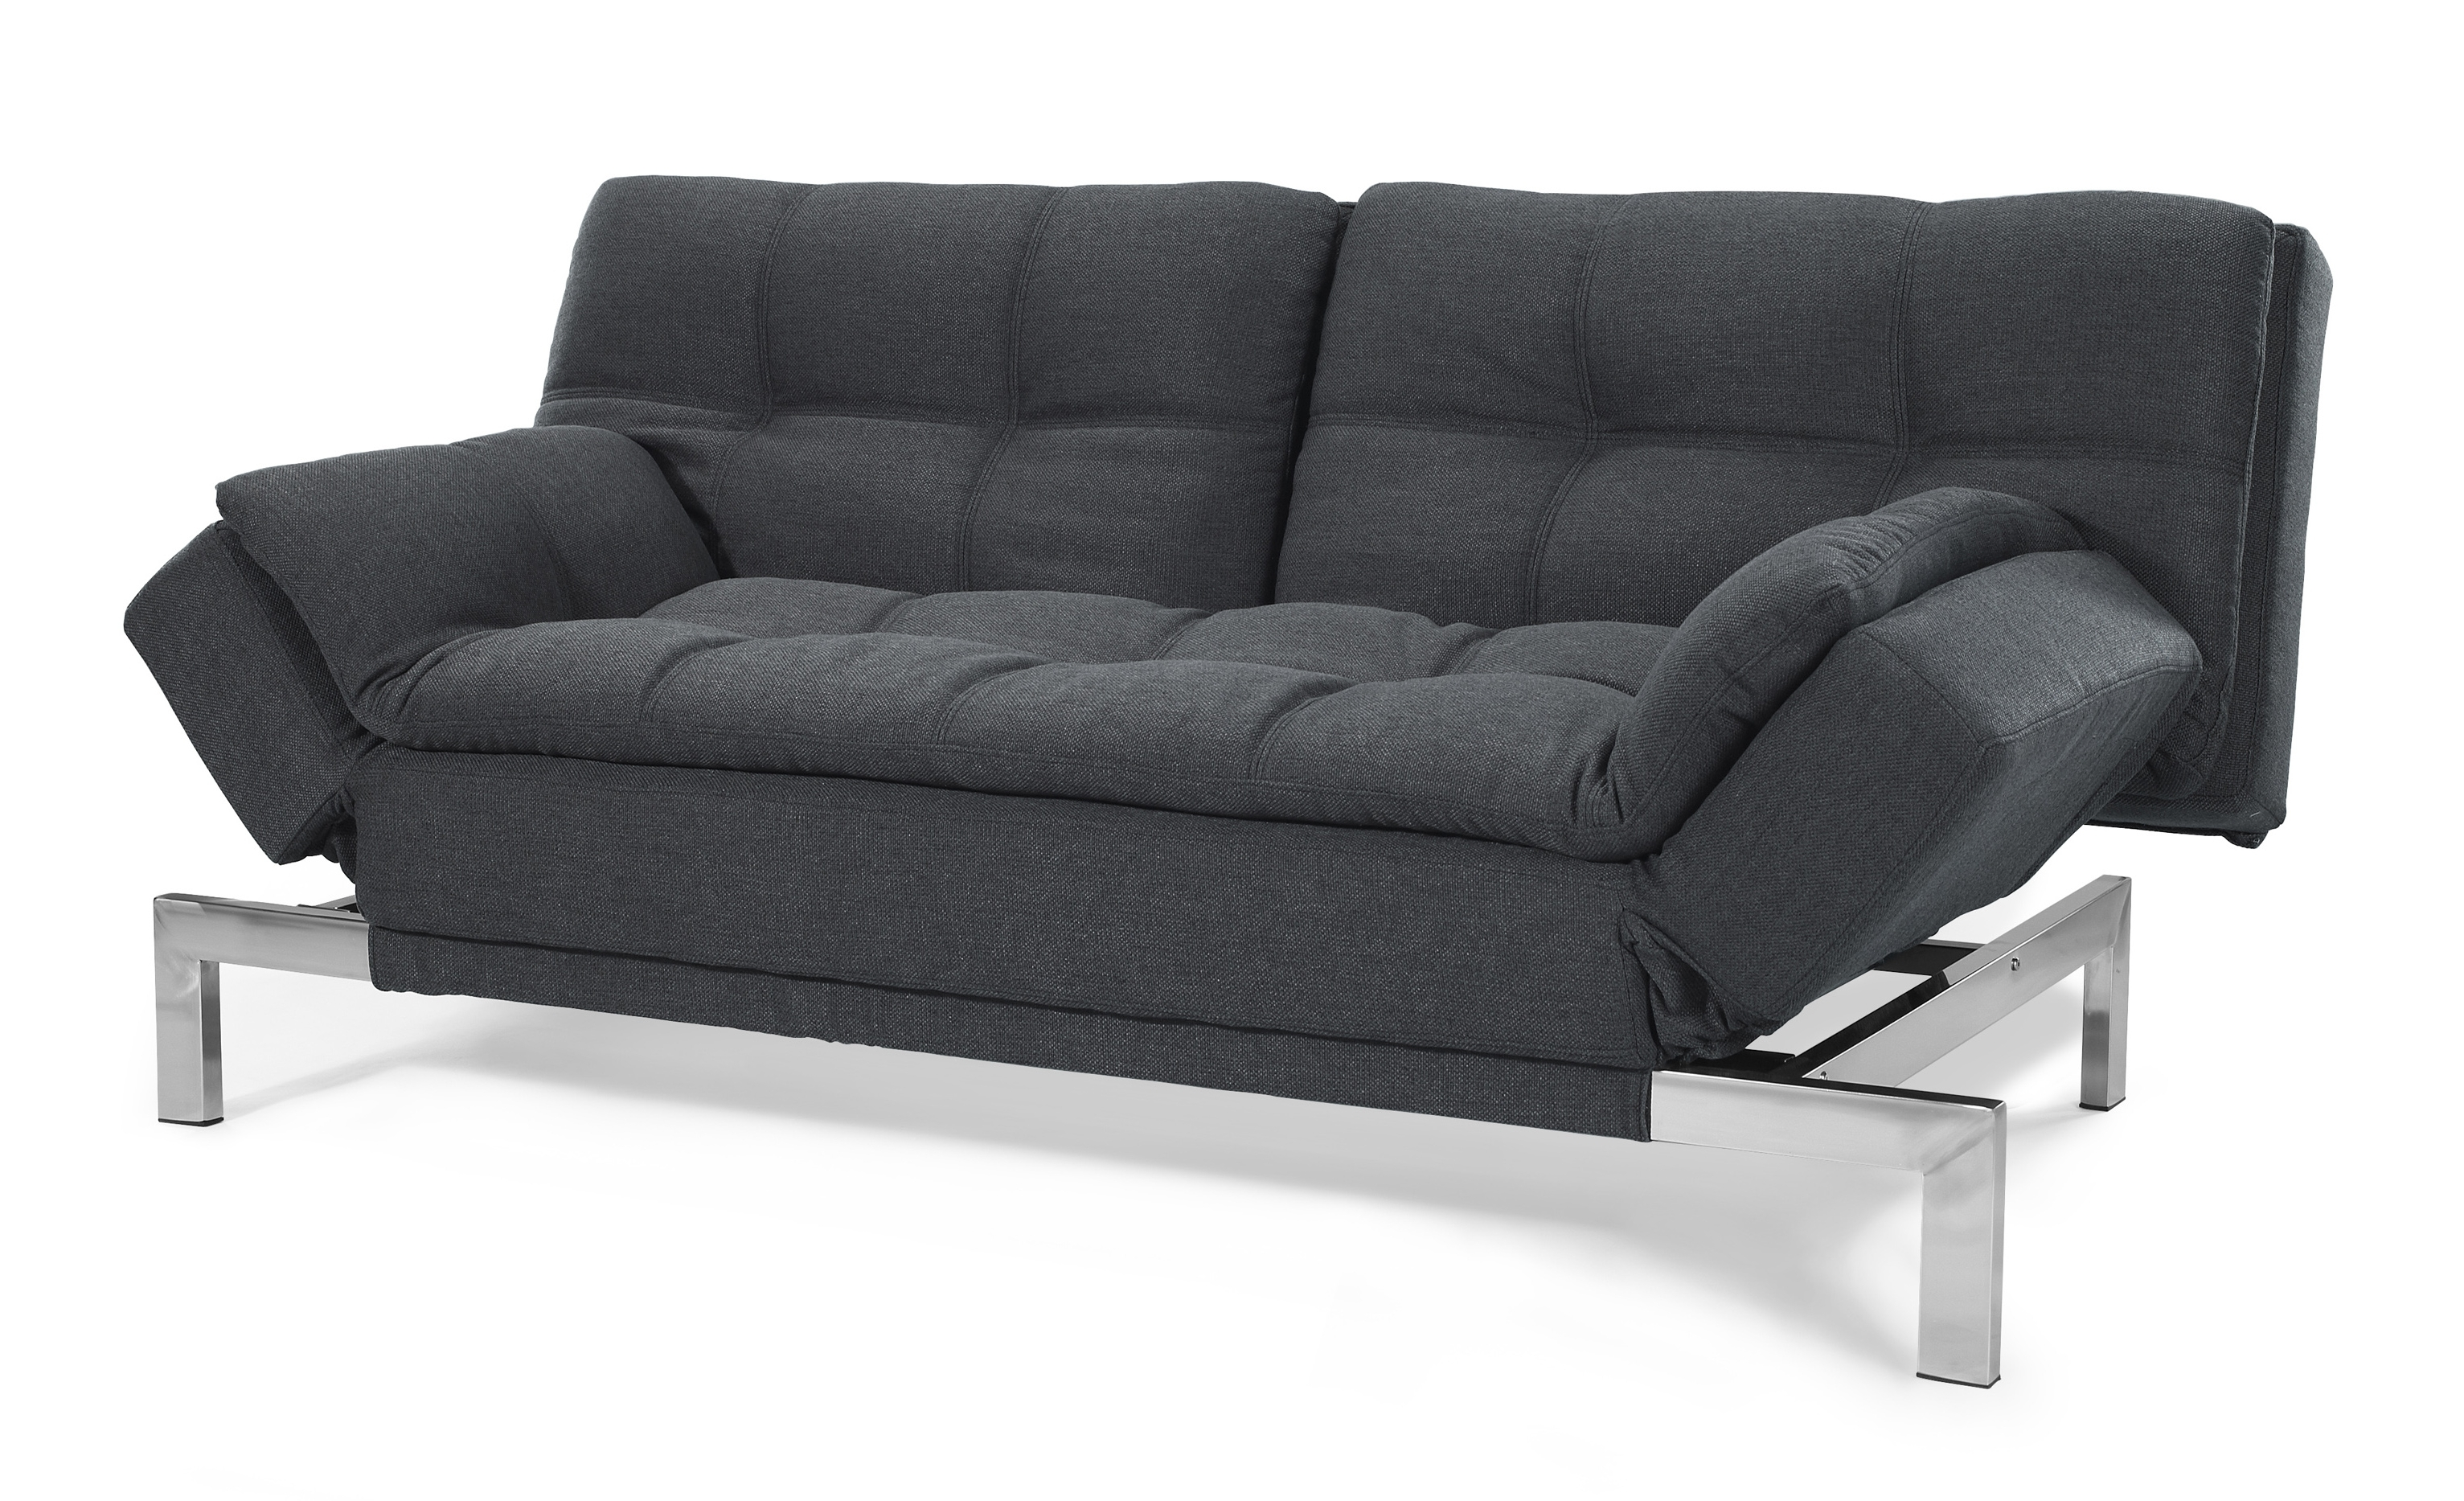 Convertible Sofas For Widely Used Lifestyle Solutions Boca Serta Convertible Sofa Sabocs3u4cc (View 7 of 20)